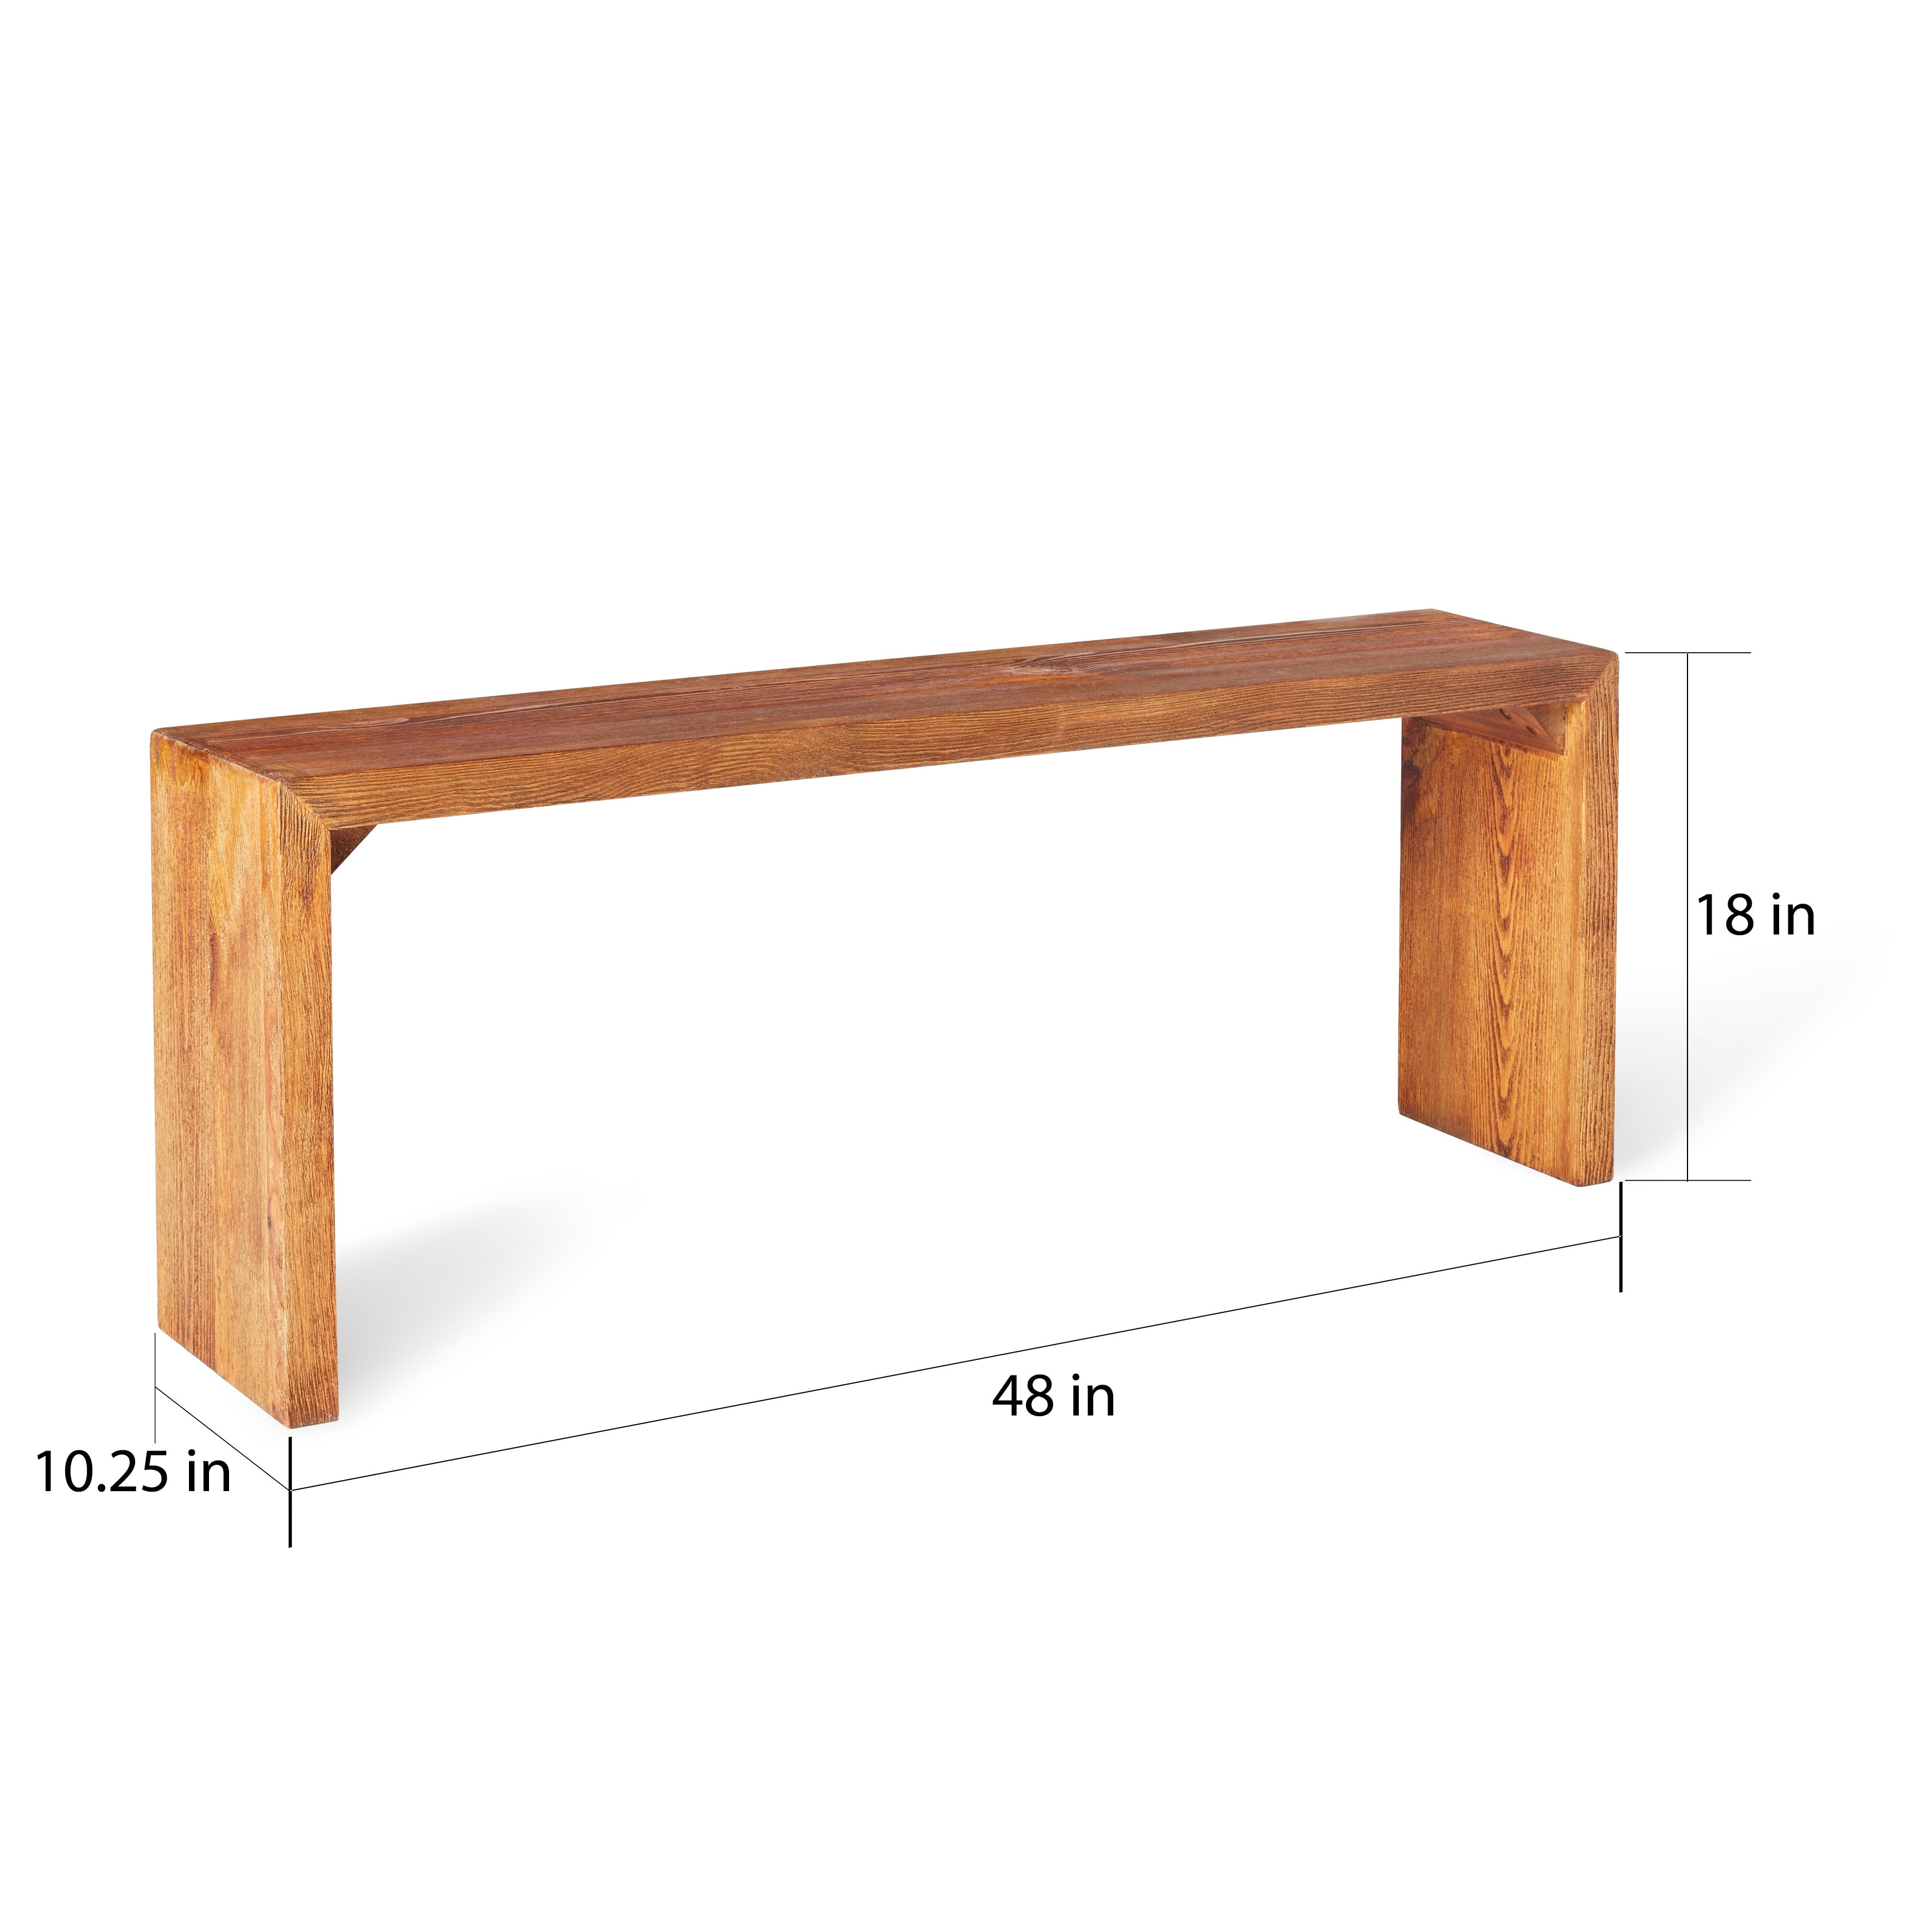 Stones U0026 Stripes Renate Natural 48 Inch Dining Room Dining Bench   Free  Shipping Today   Overstock   15950699